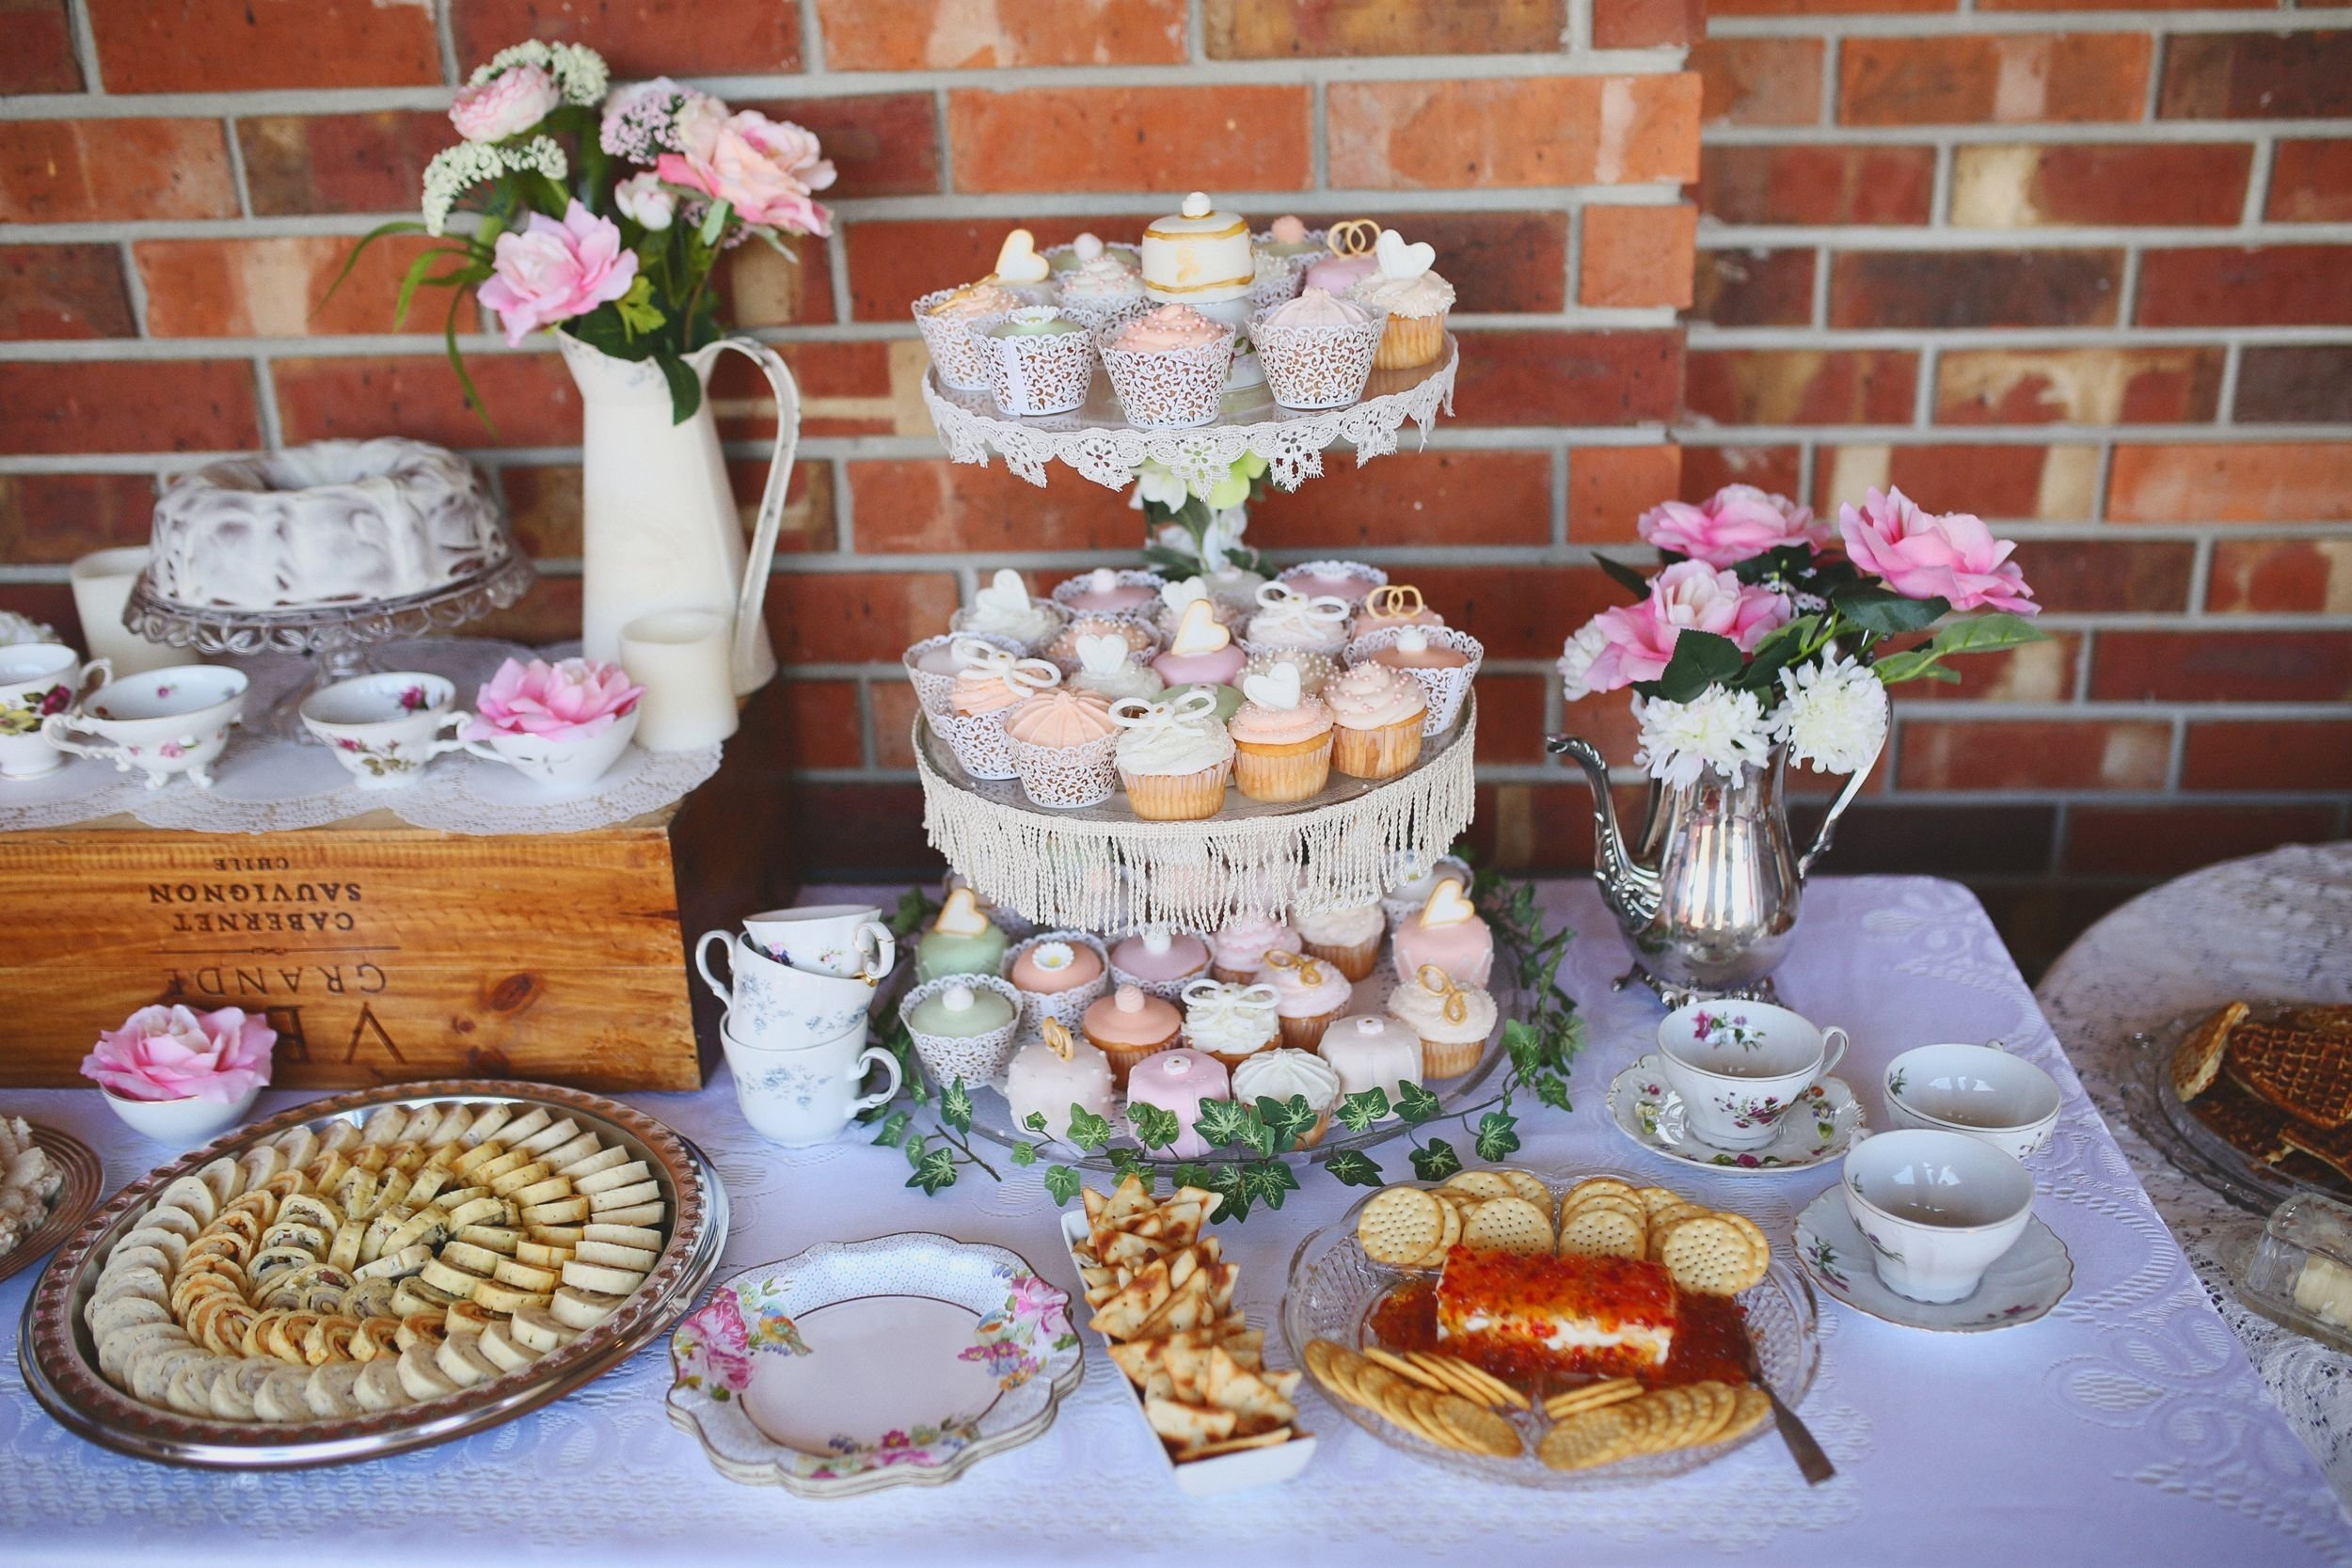 10 Attractive Shabby Chic Bridal Shower Ideas southern belle tea party themed bridal brunch shabby chic bridal 1 2020